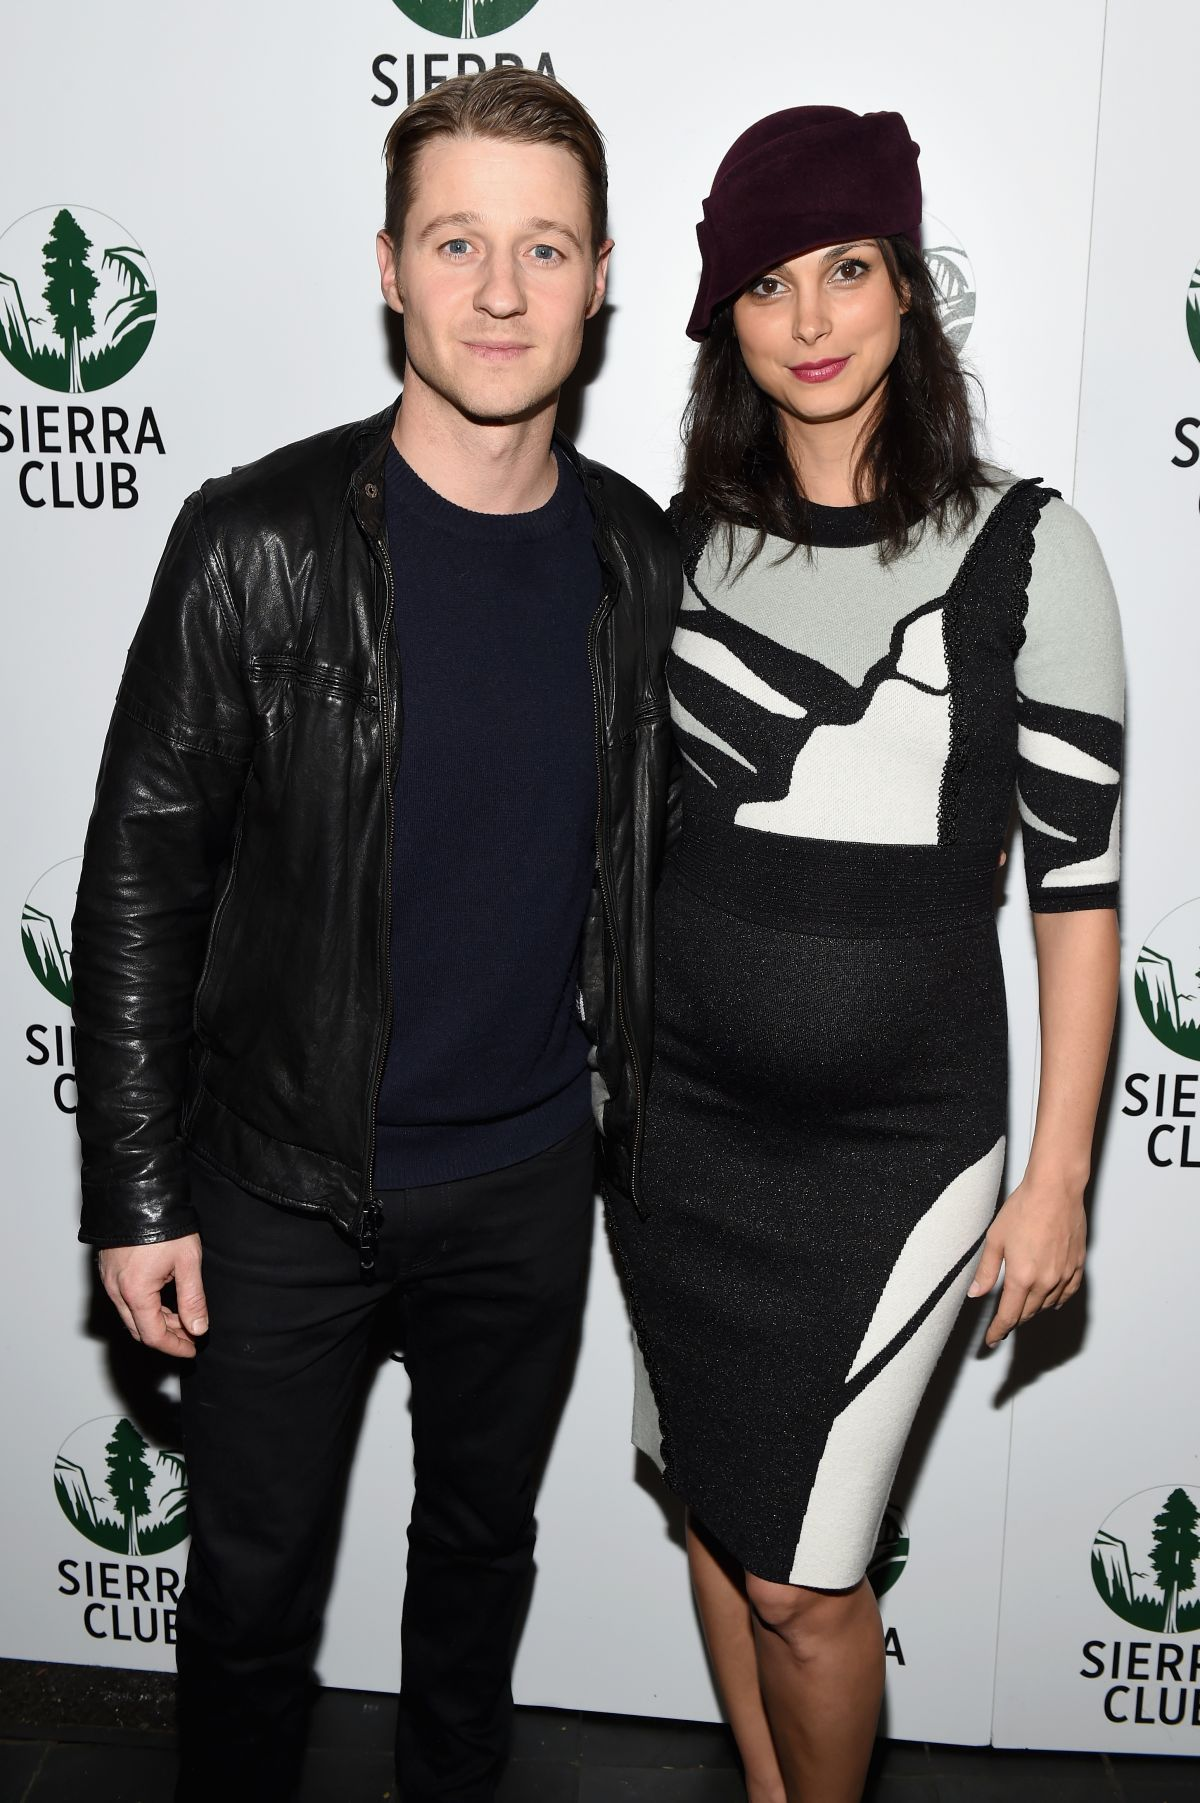 MORENA BACCARIN at Sierra Club